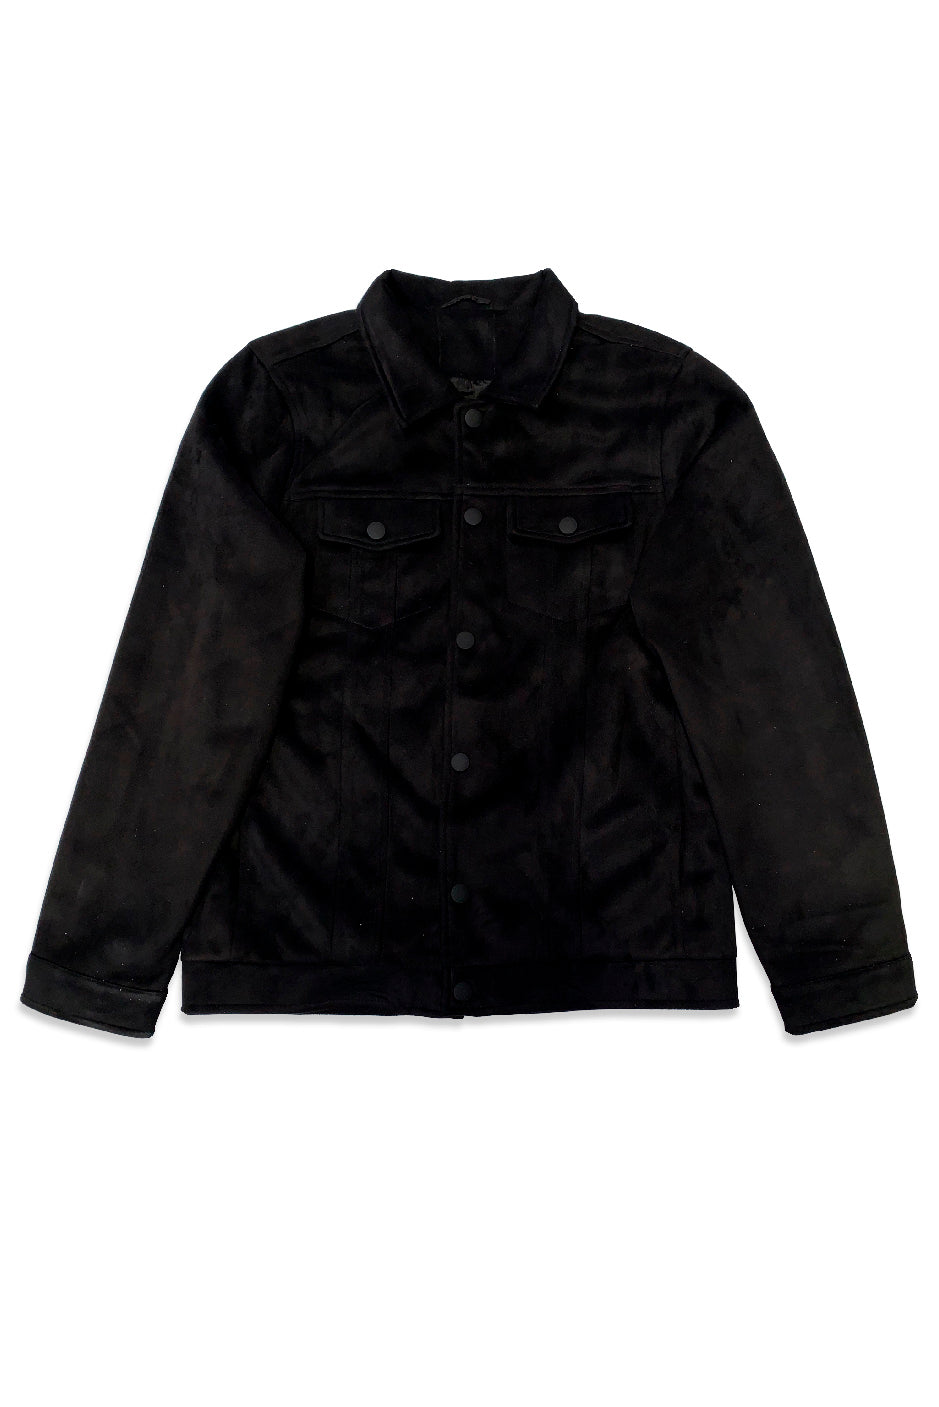 Project B Faux Suede Jacket